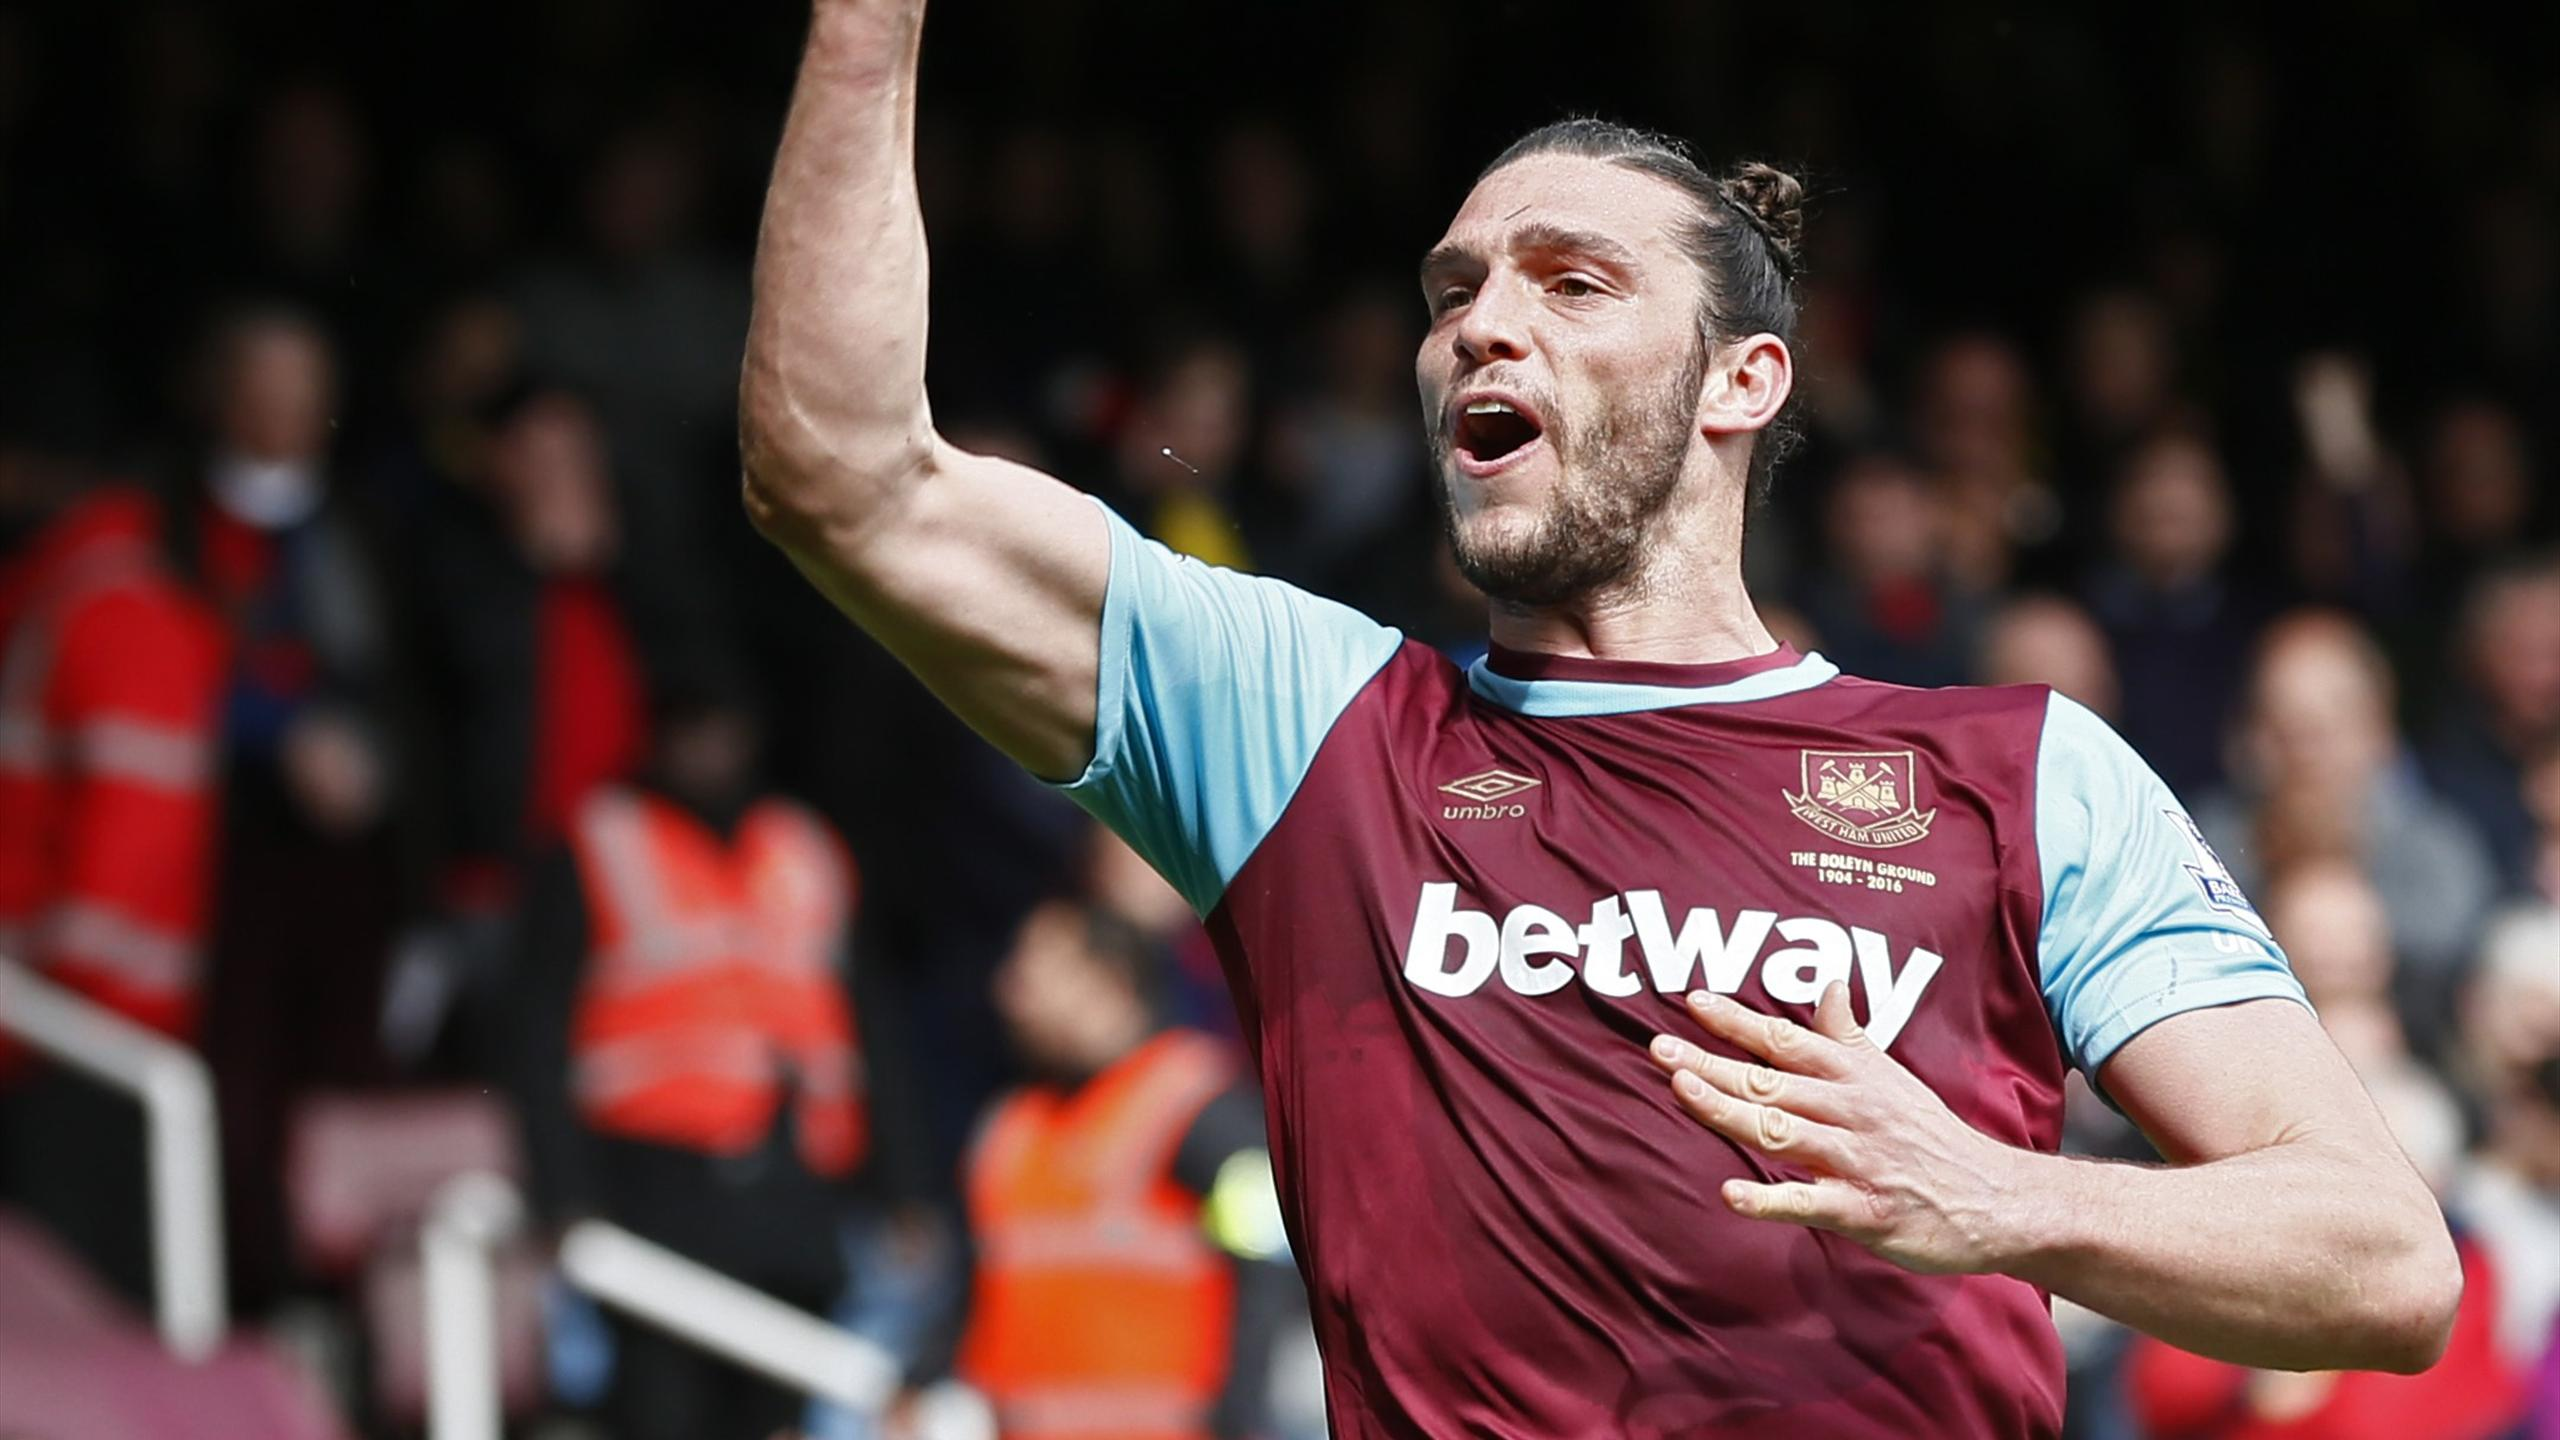 Andy Carroll celebrates scoring the second goal for West Ham against Arsenal